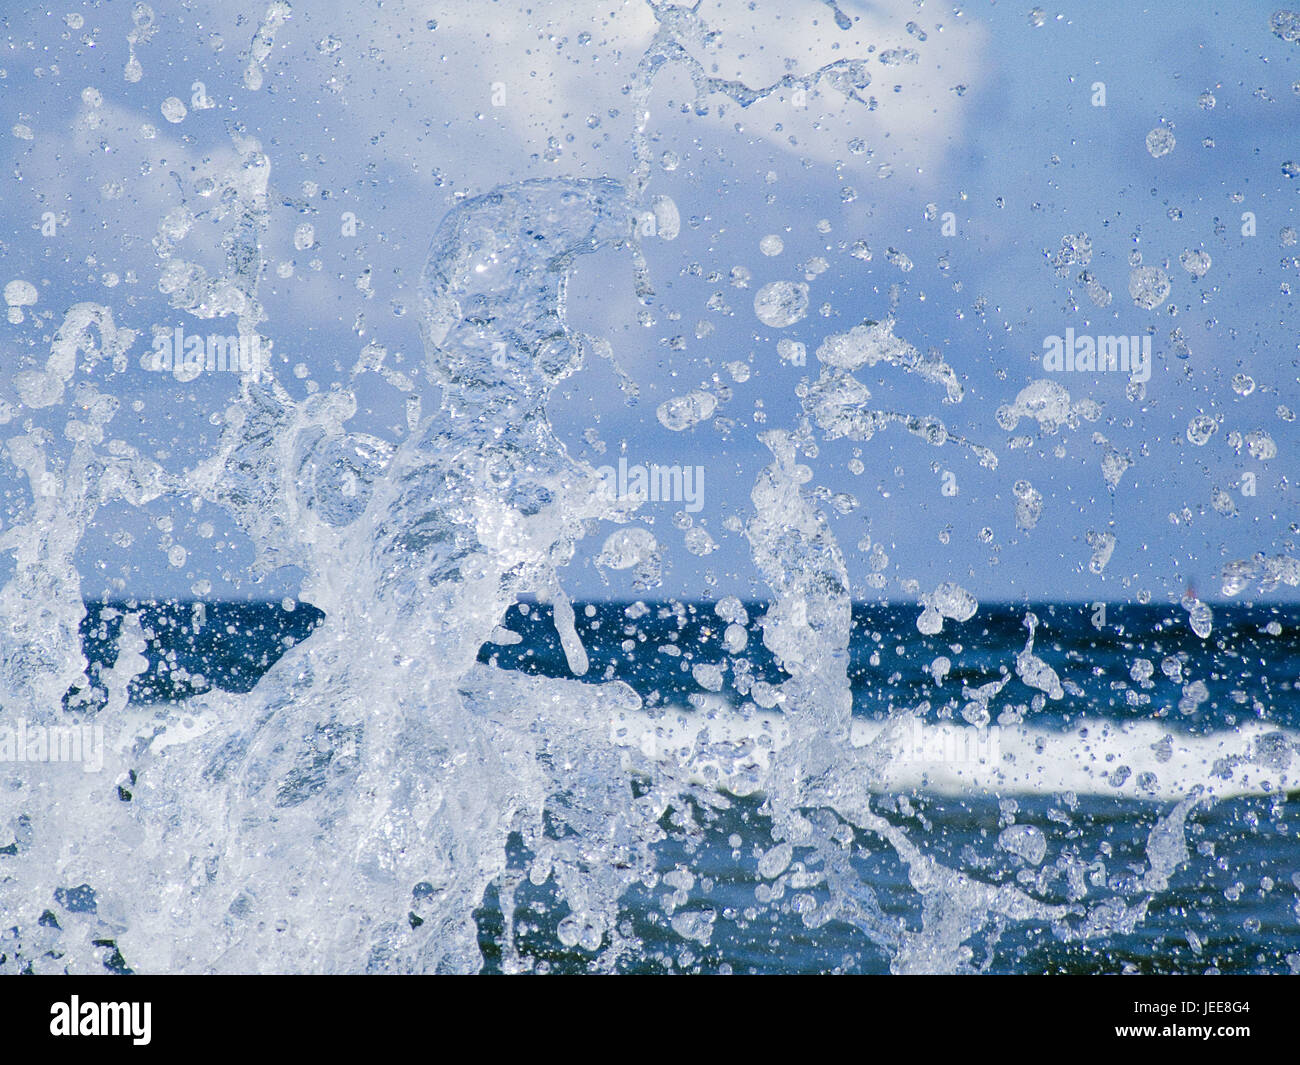 Sea, foam, close up, nature, water, waves, surf, water drop, drop, drop, drop of water, splash, nature power, spectacle - Stock Image